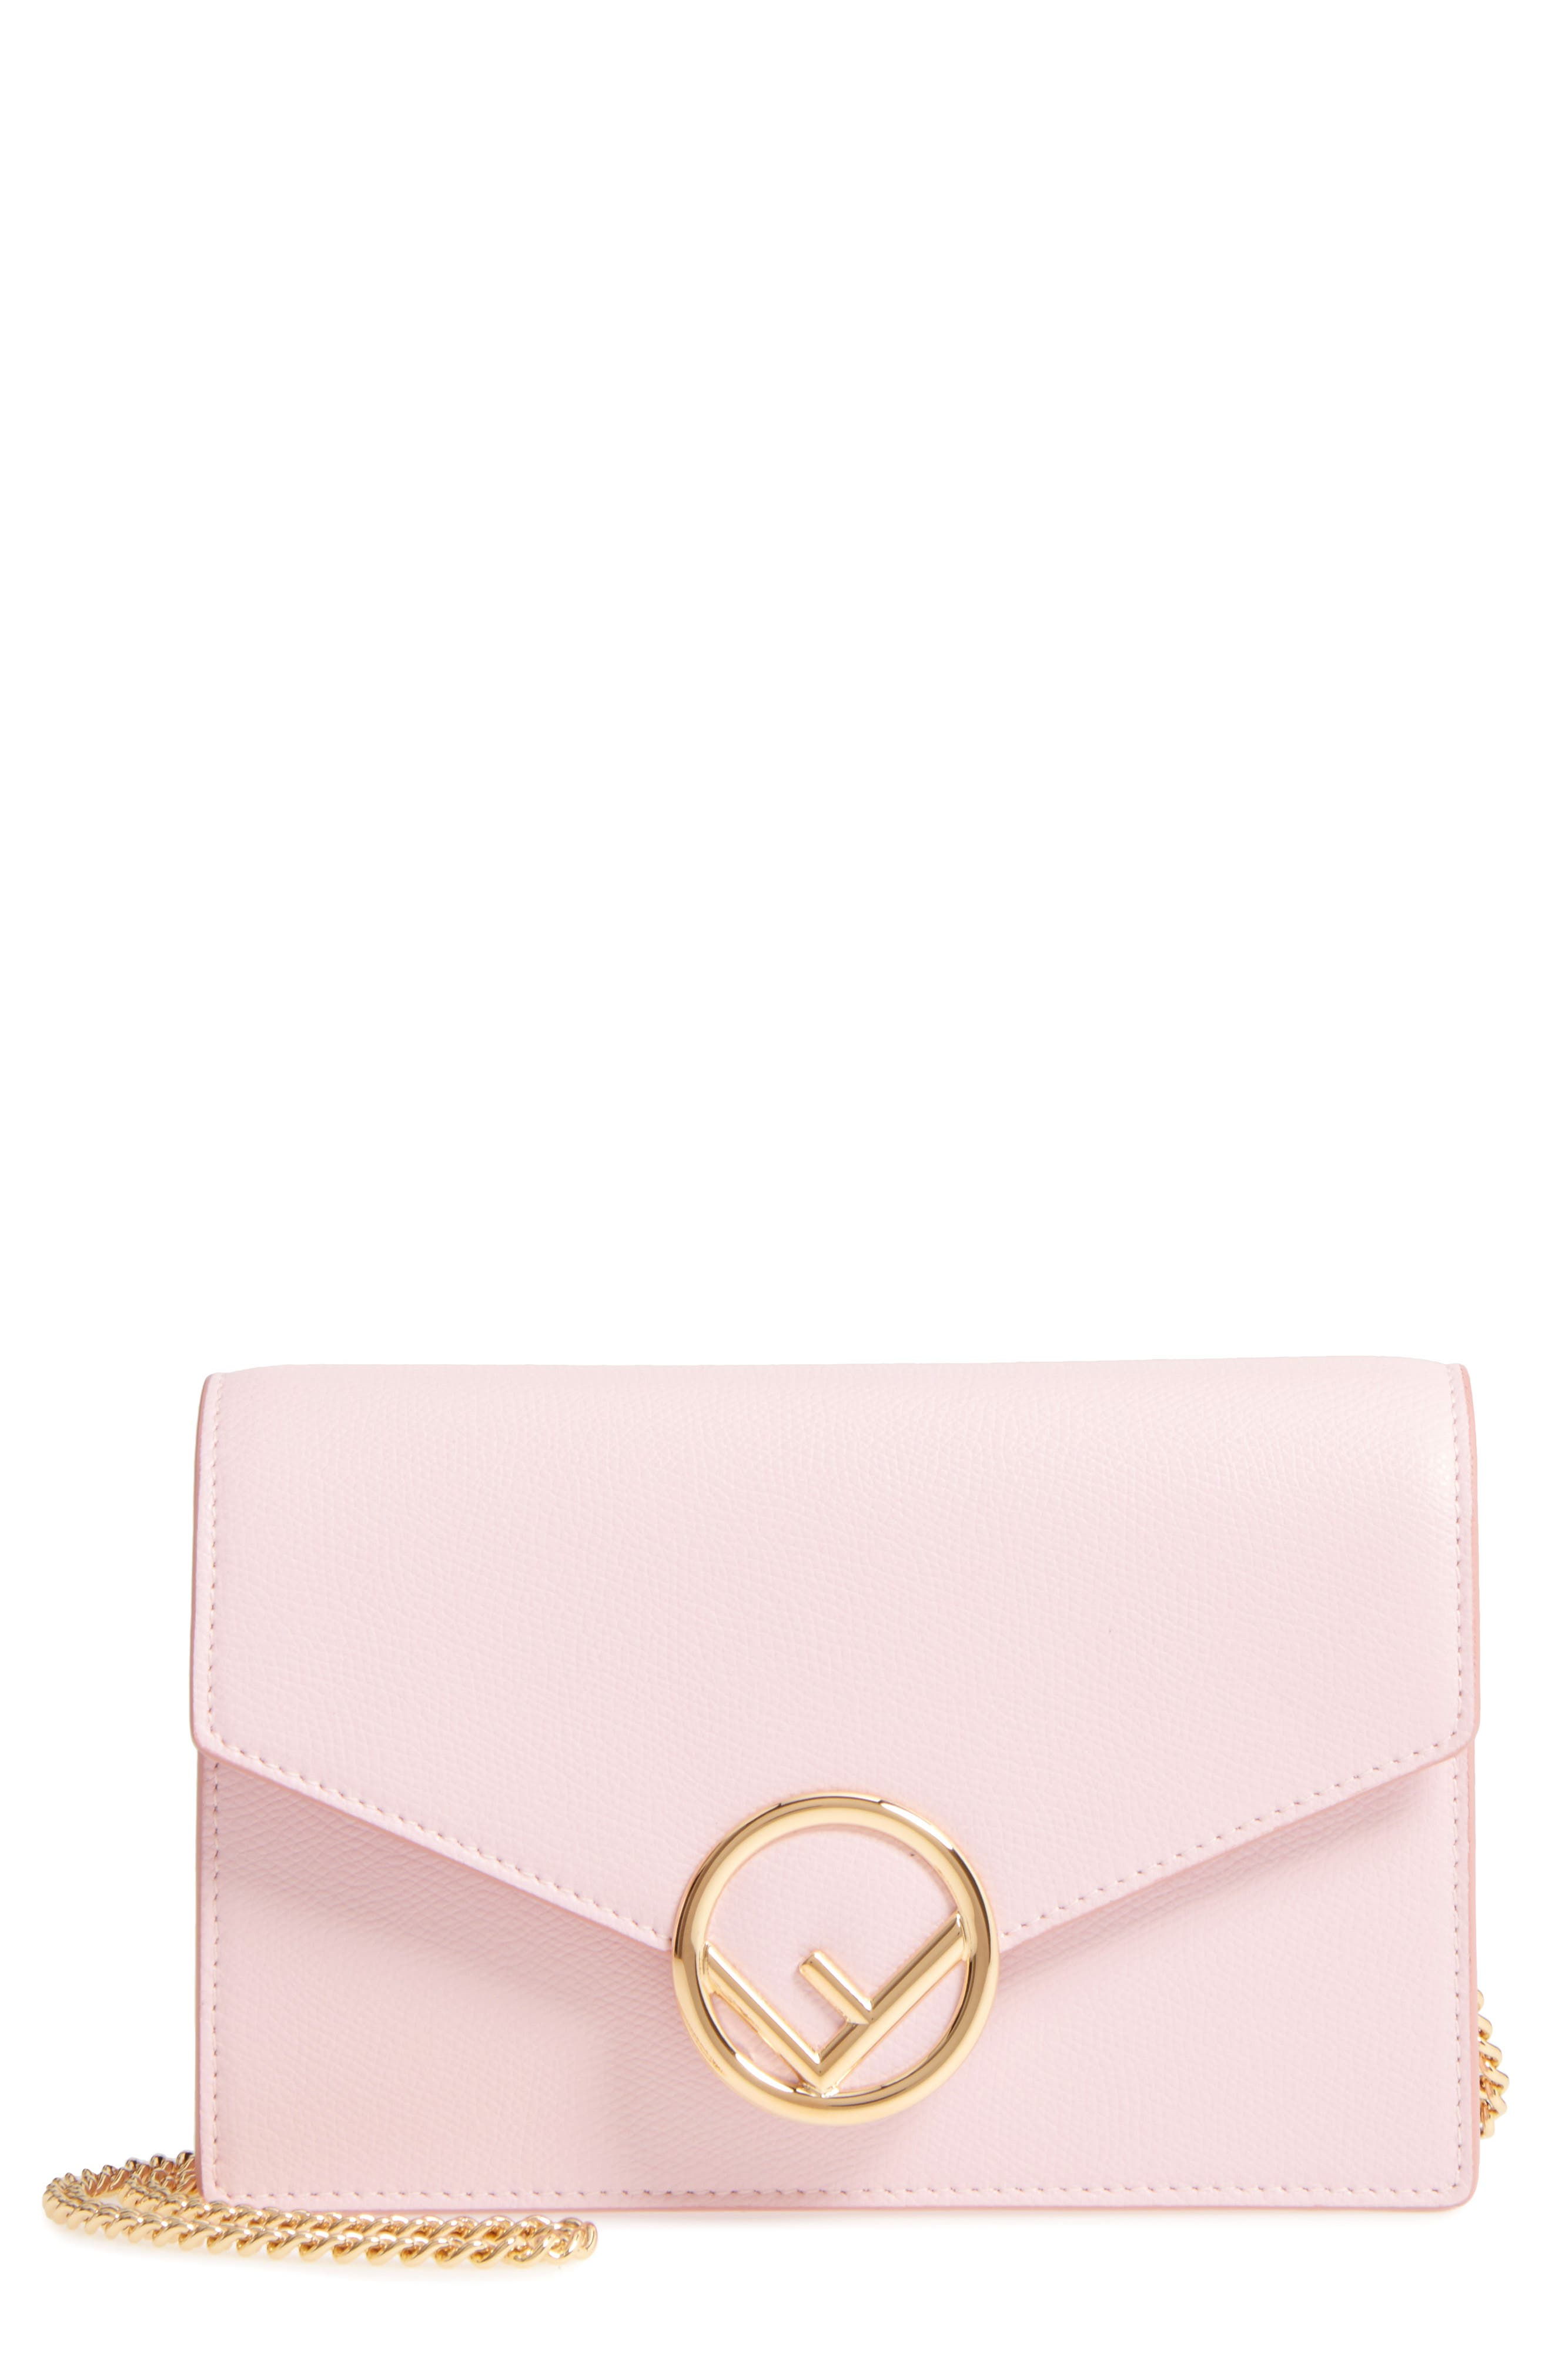 Liberty Logo Calfskin Leather Wallet on a Chain,                         Main,                         color, Peony/ Oro Soft